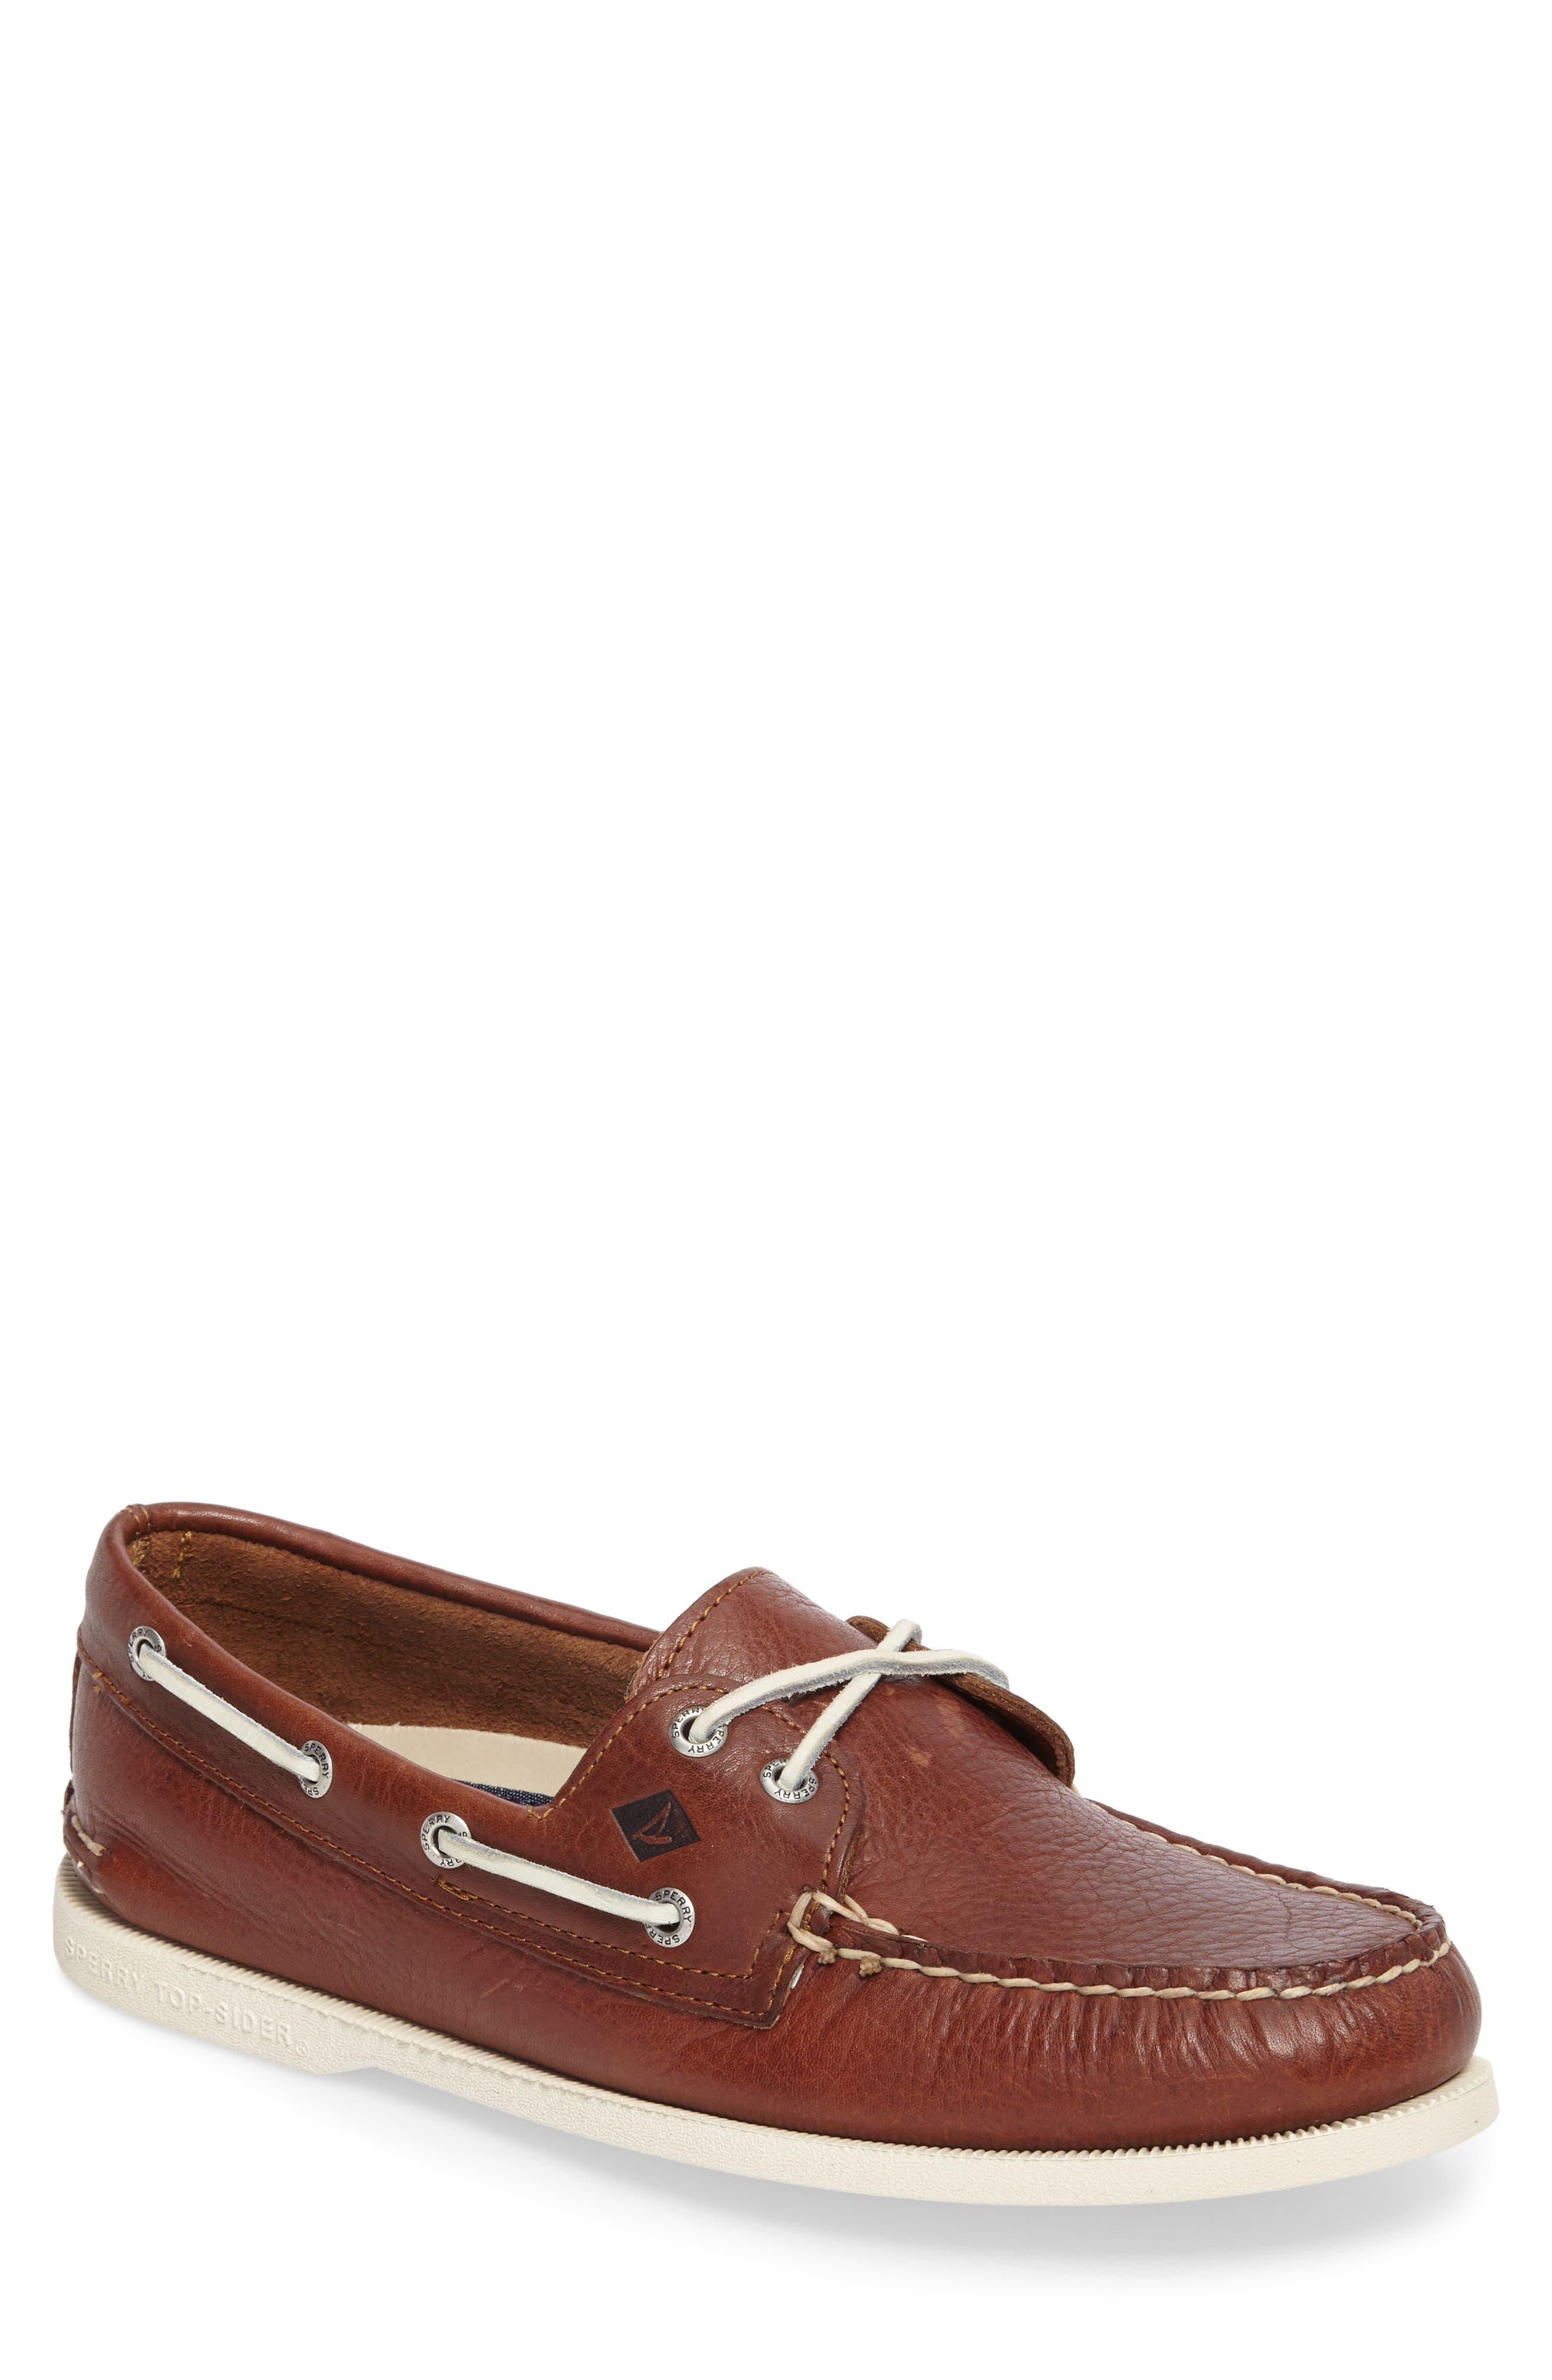 Authentic Original Boat Shoe,                         Main,                         color, Brown Leather